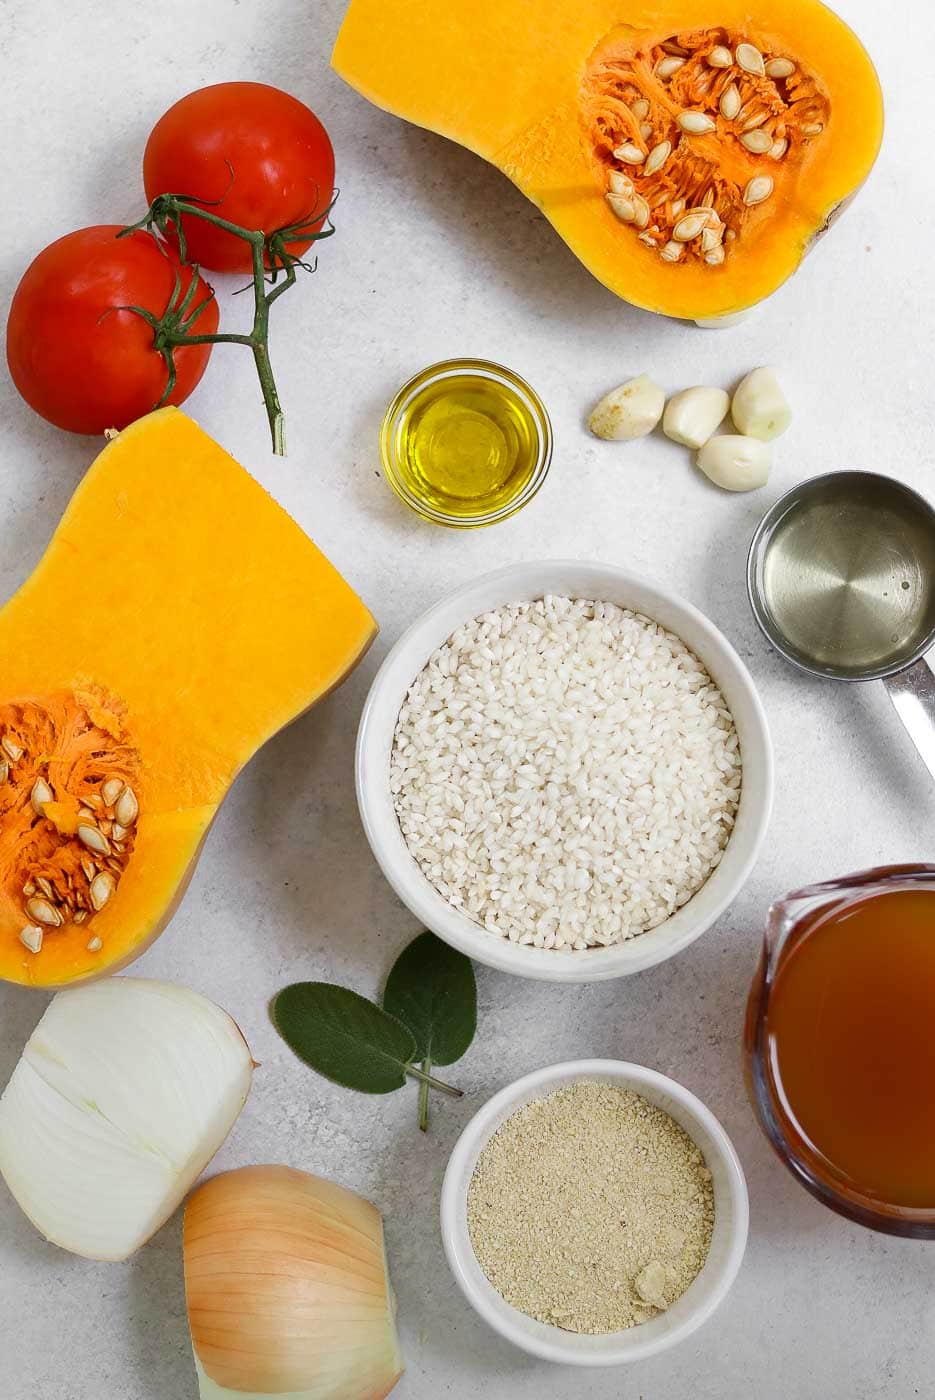 Ingredients for the vegan butternut squash risotto recipe.